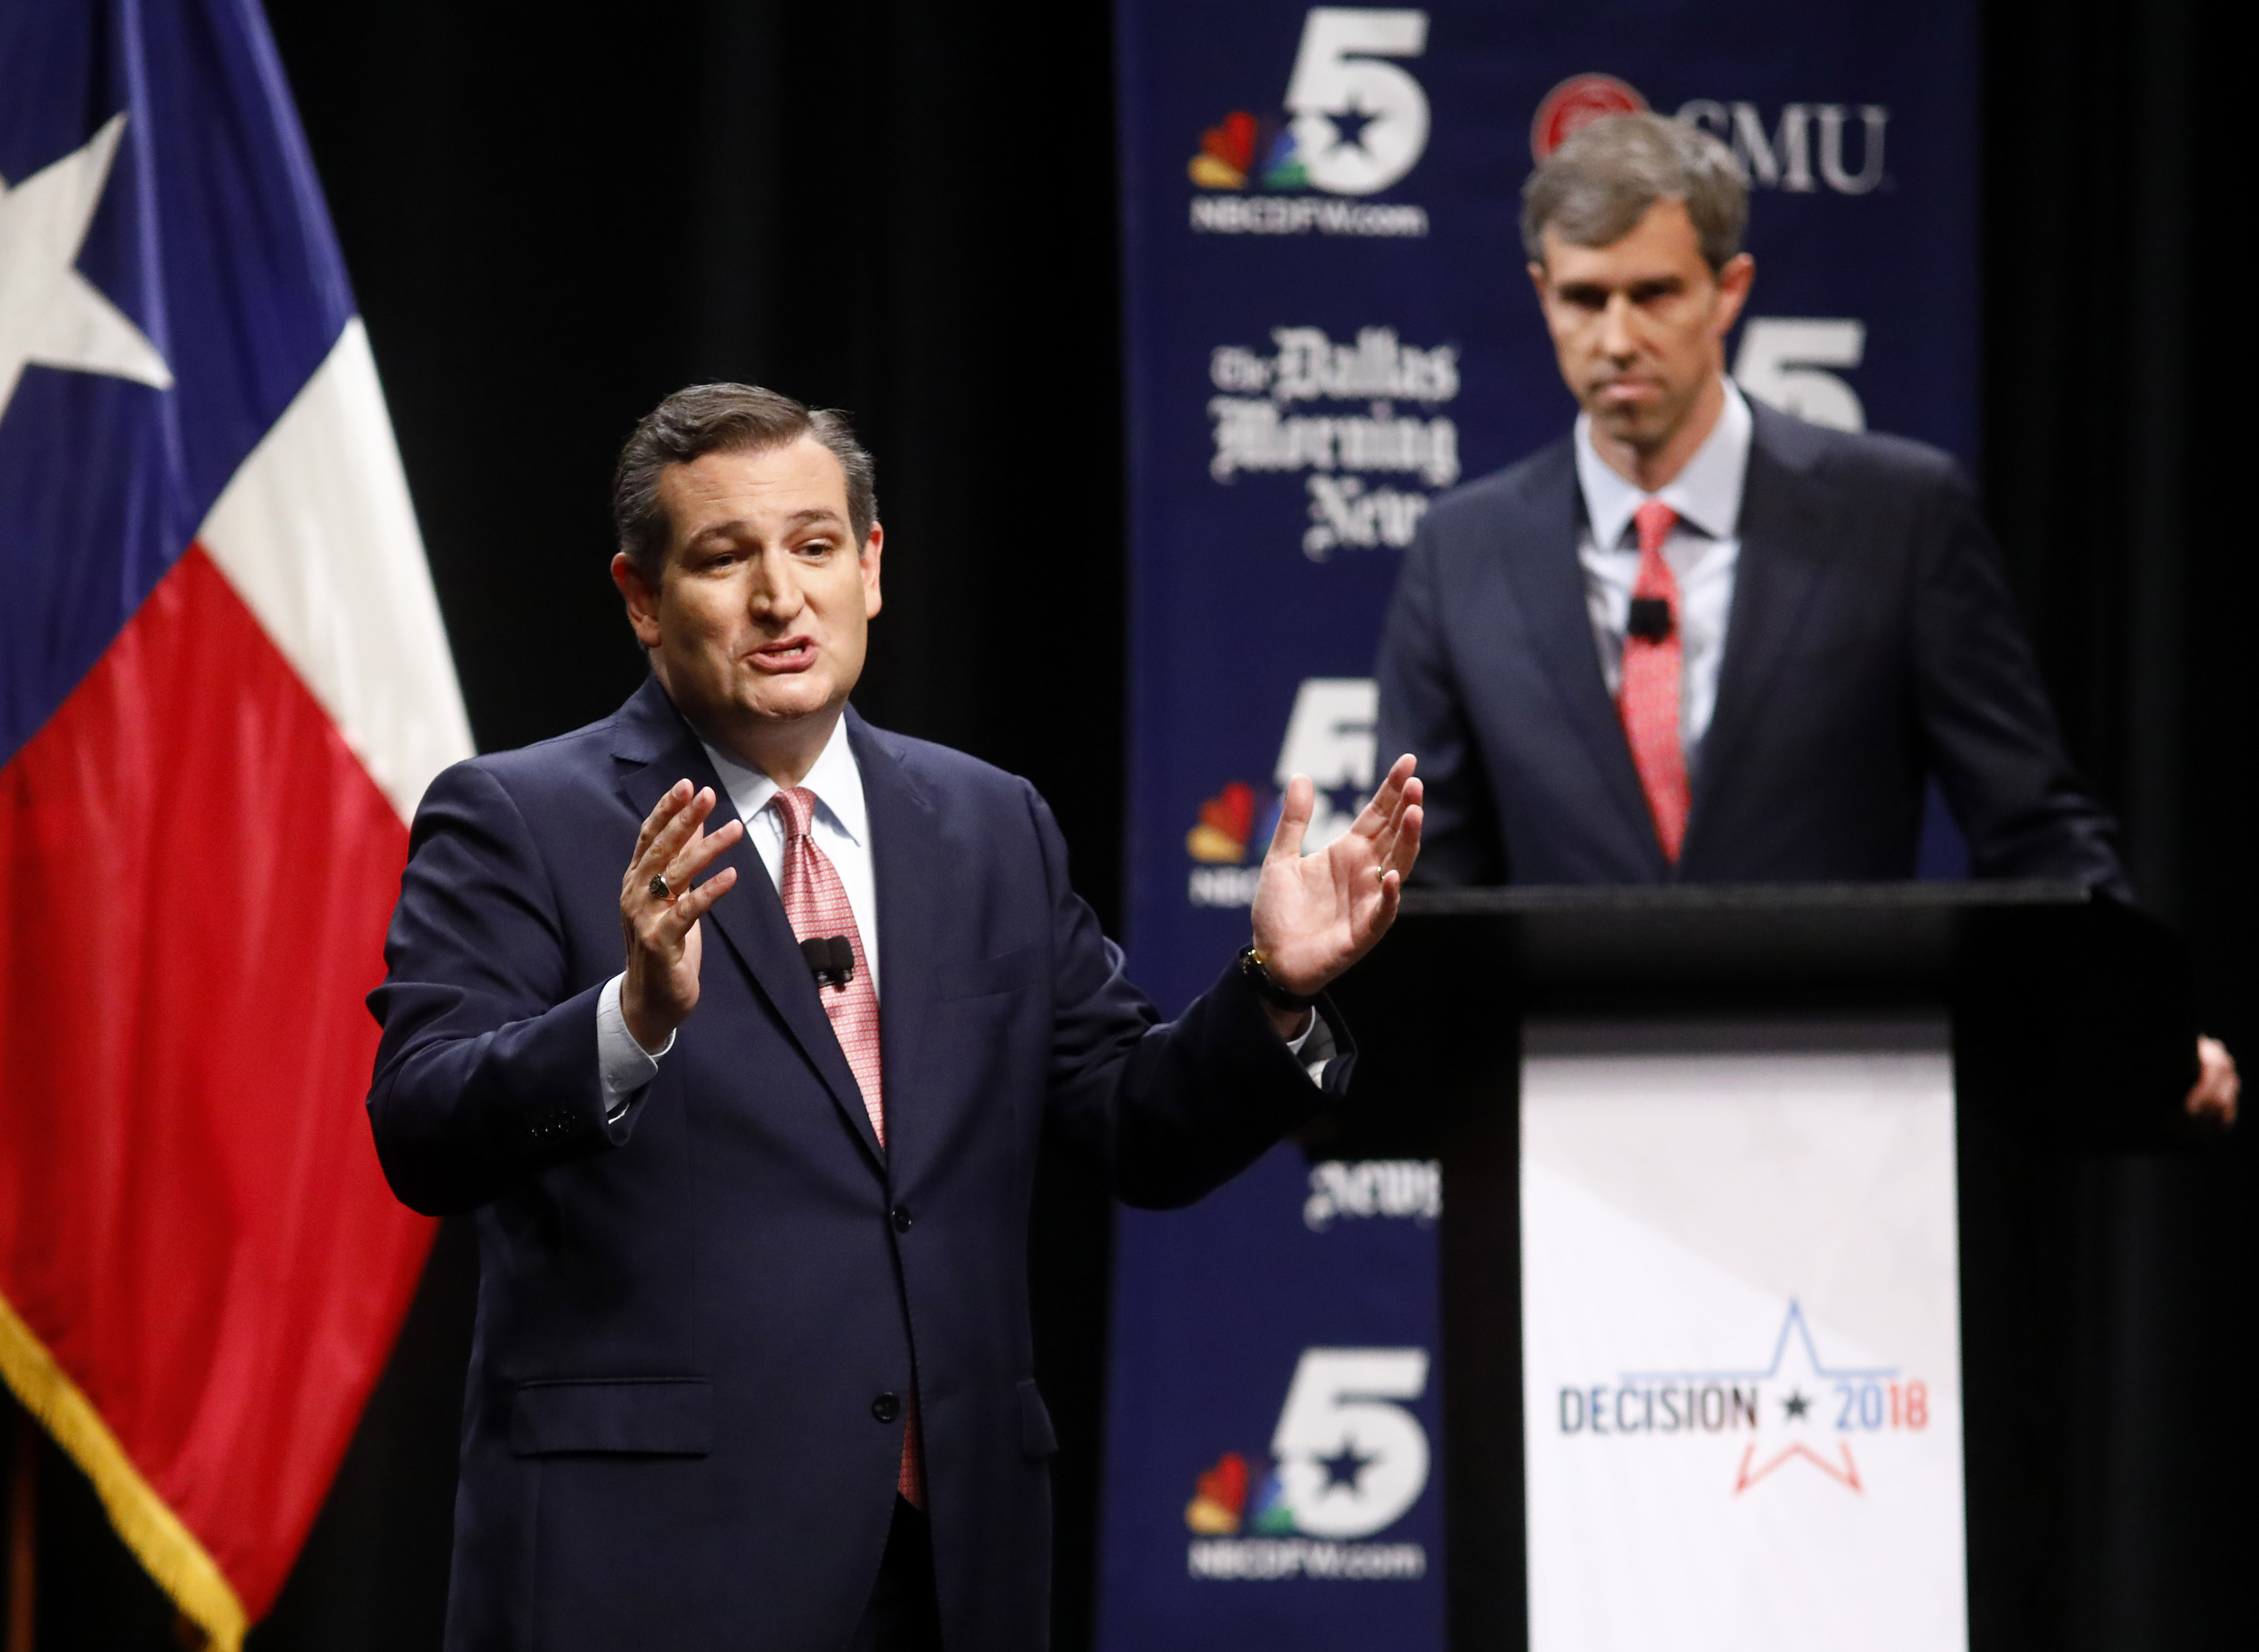 DALLAS, TX - SEPTEMBER 21: Sen. Ted Cruz (R-TX) makes his final remarks as Rep. Beto O'Rourke (D-TX) listens during a debate at McFarlin Auditorium at SMU on September 21, 2018 in Dallas, Texas. (Photo by Tom Fox-Pool/Getty Images)